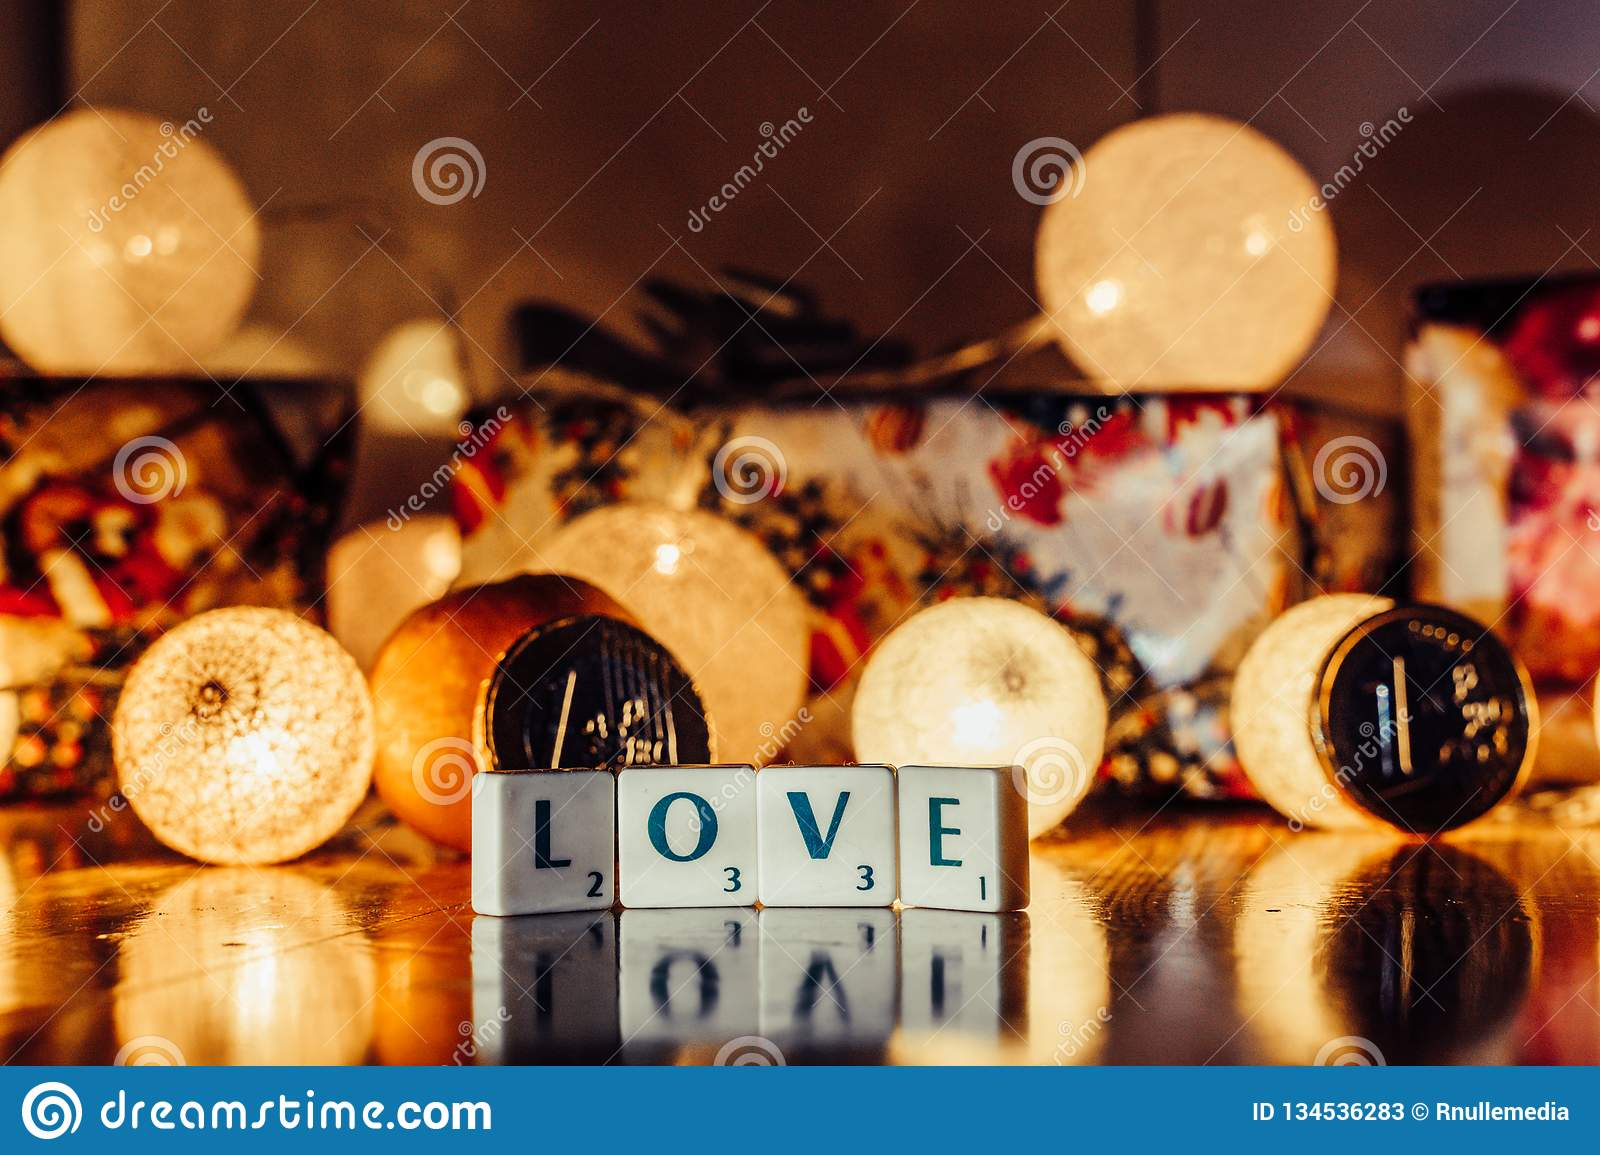 Word \'Love\' set on the Wooden Background from Letters of Board Game With the Blurred Christmas Lights, Fruits and Presents in th. E Background together with stock photos